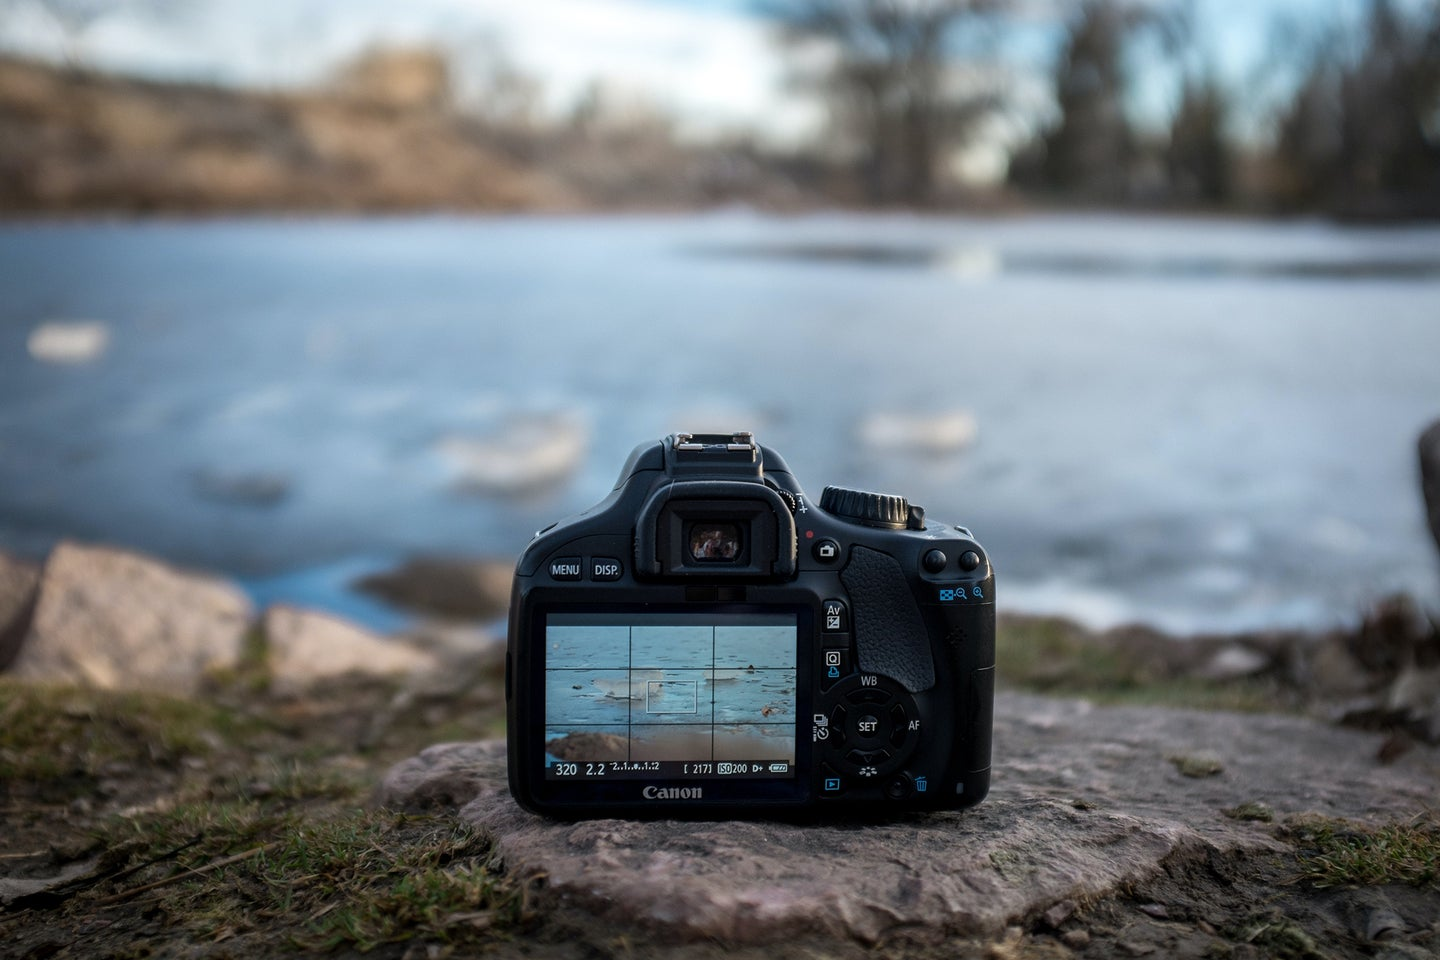 canon camera on a rock in front of a pond